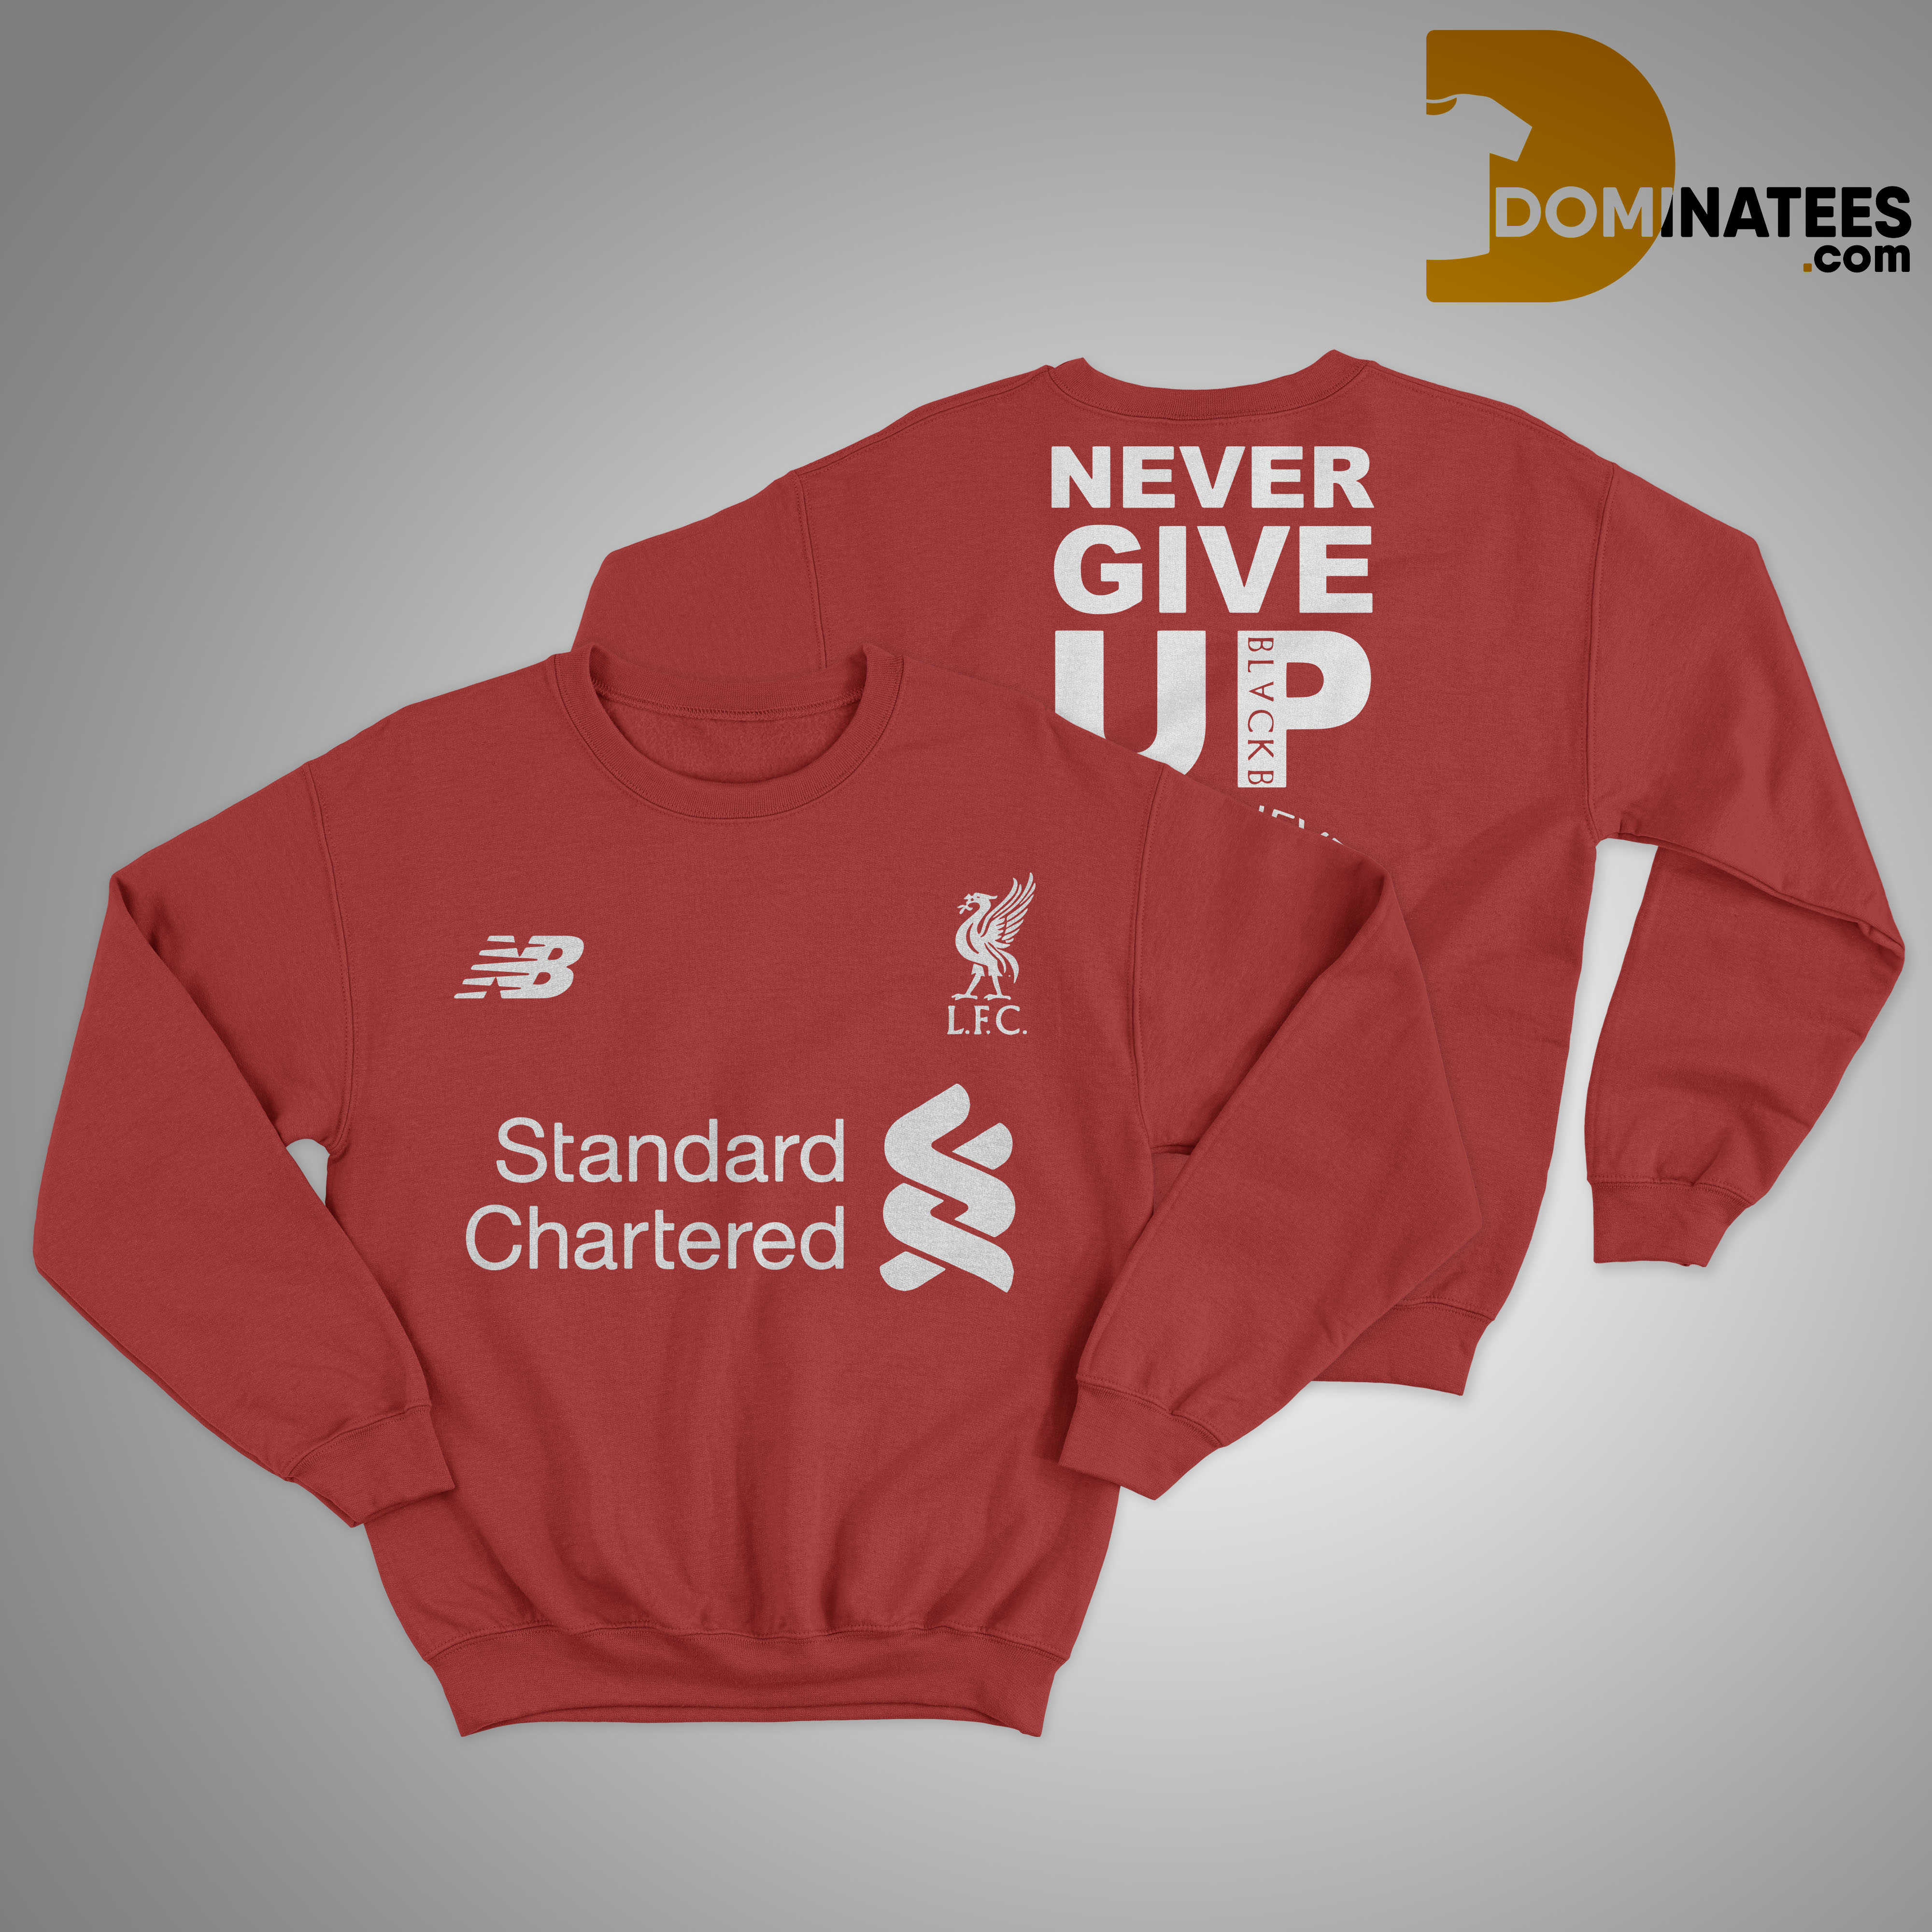 Liverpool Standard Chartered Never Give Up You'll Never Walk Alone Sweater